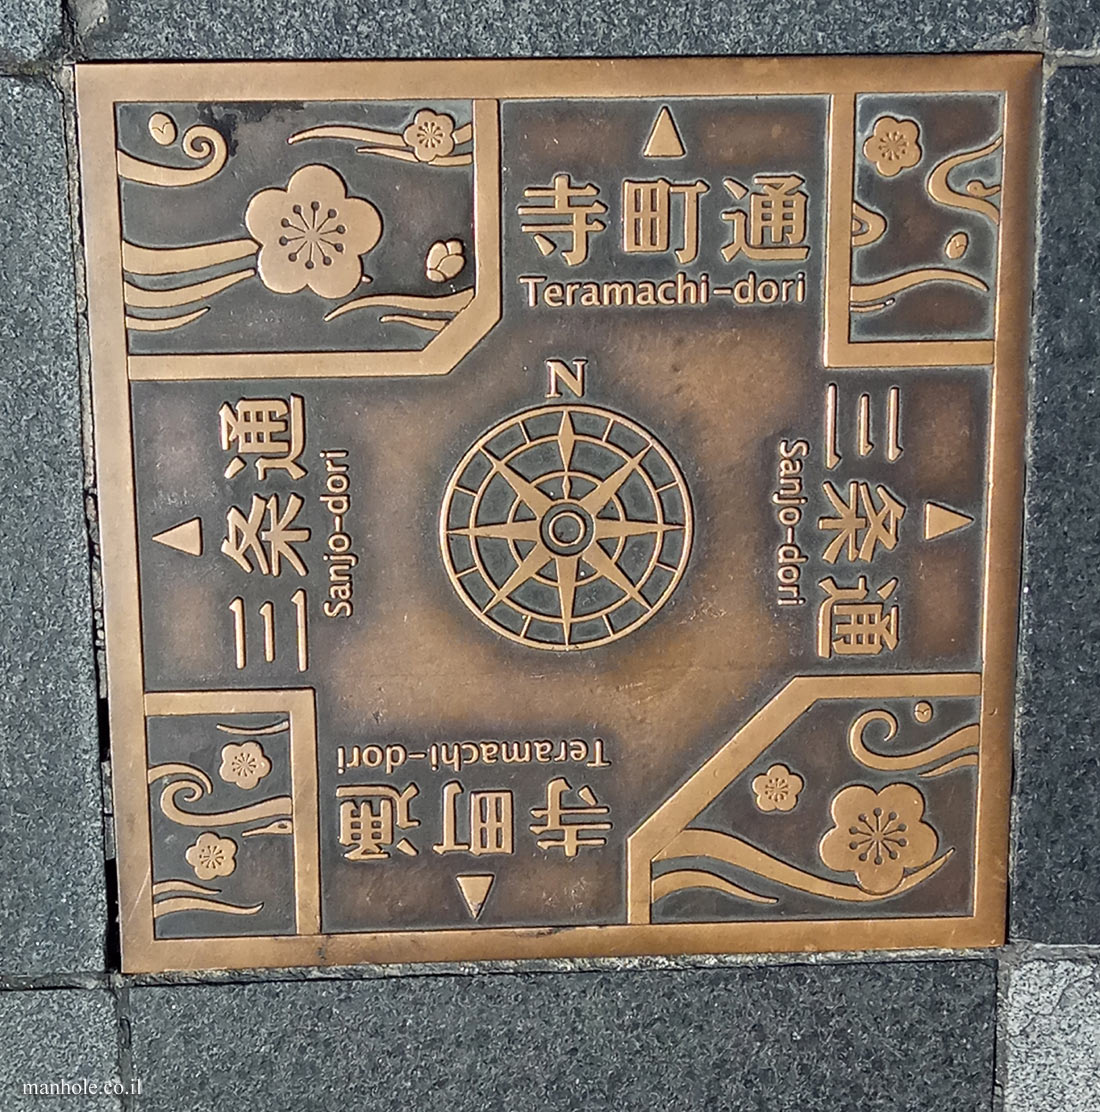 Kyoto - boards indicating directions to streets in the city